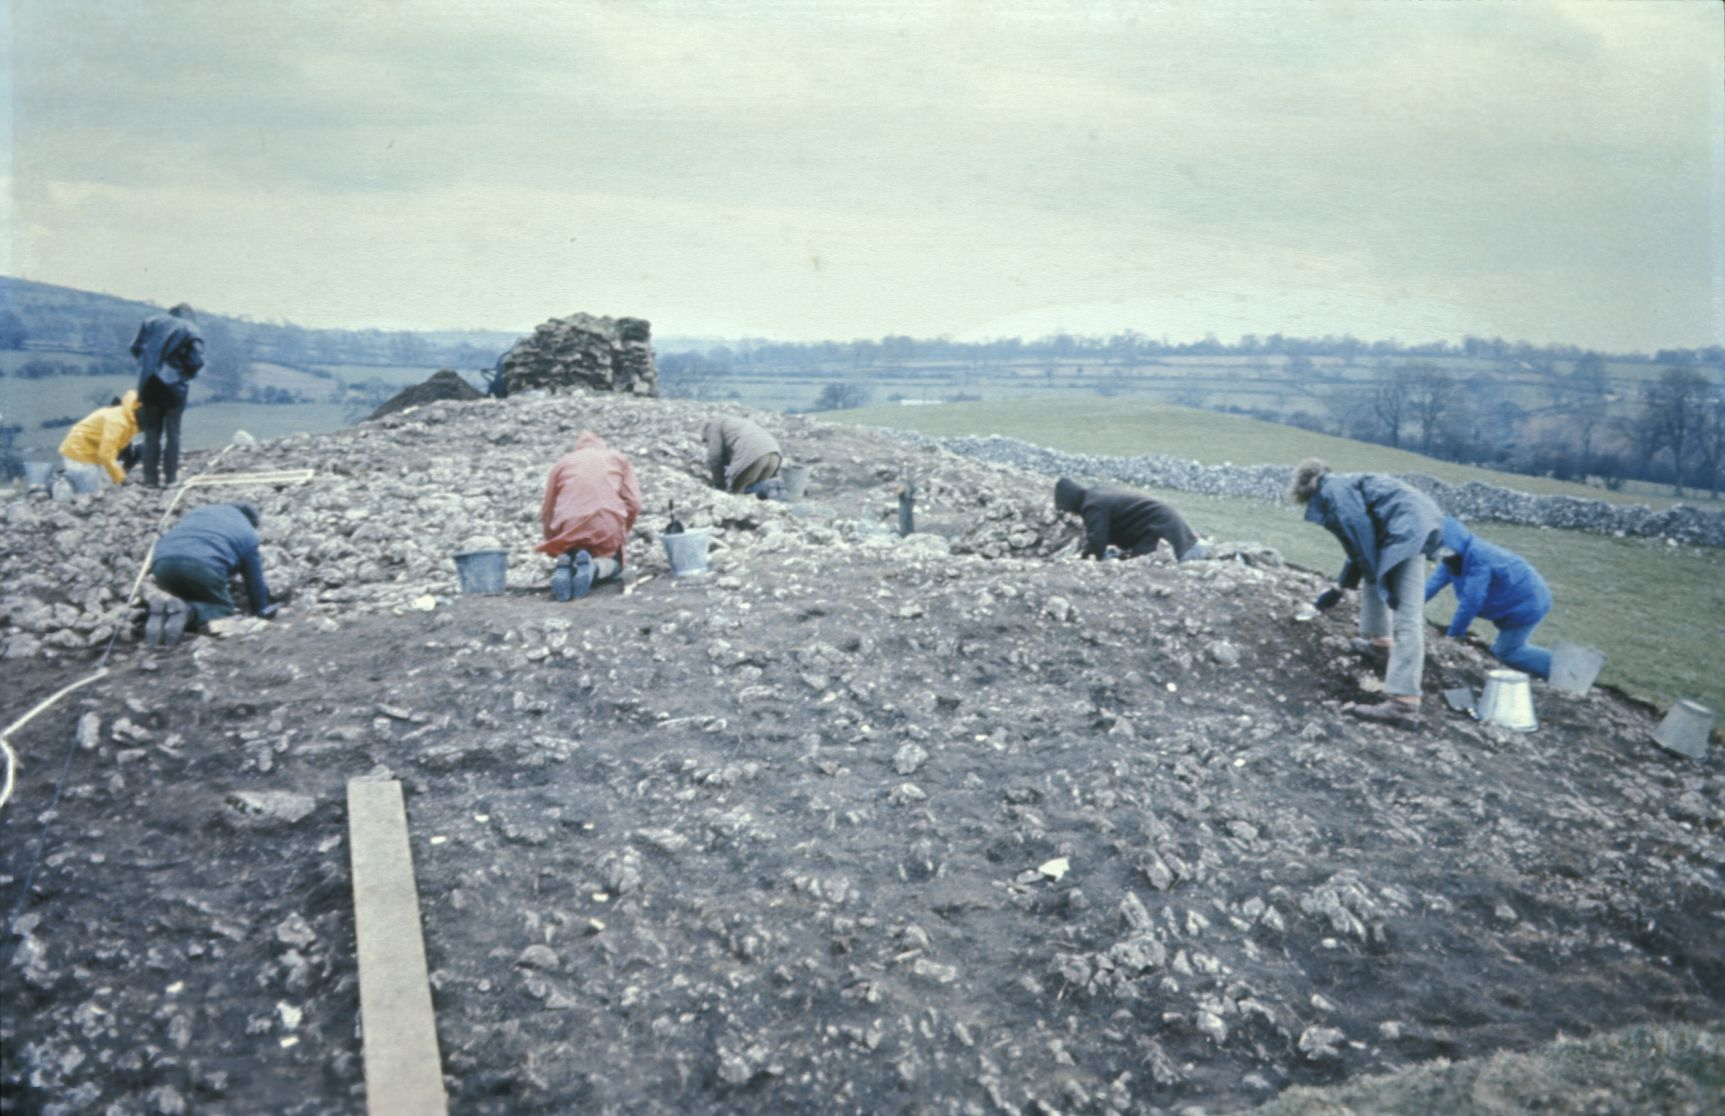 A photo of several people working on a shallow archaeological excavation. Grass has been removed, exposing a stony surface just below the ground.